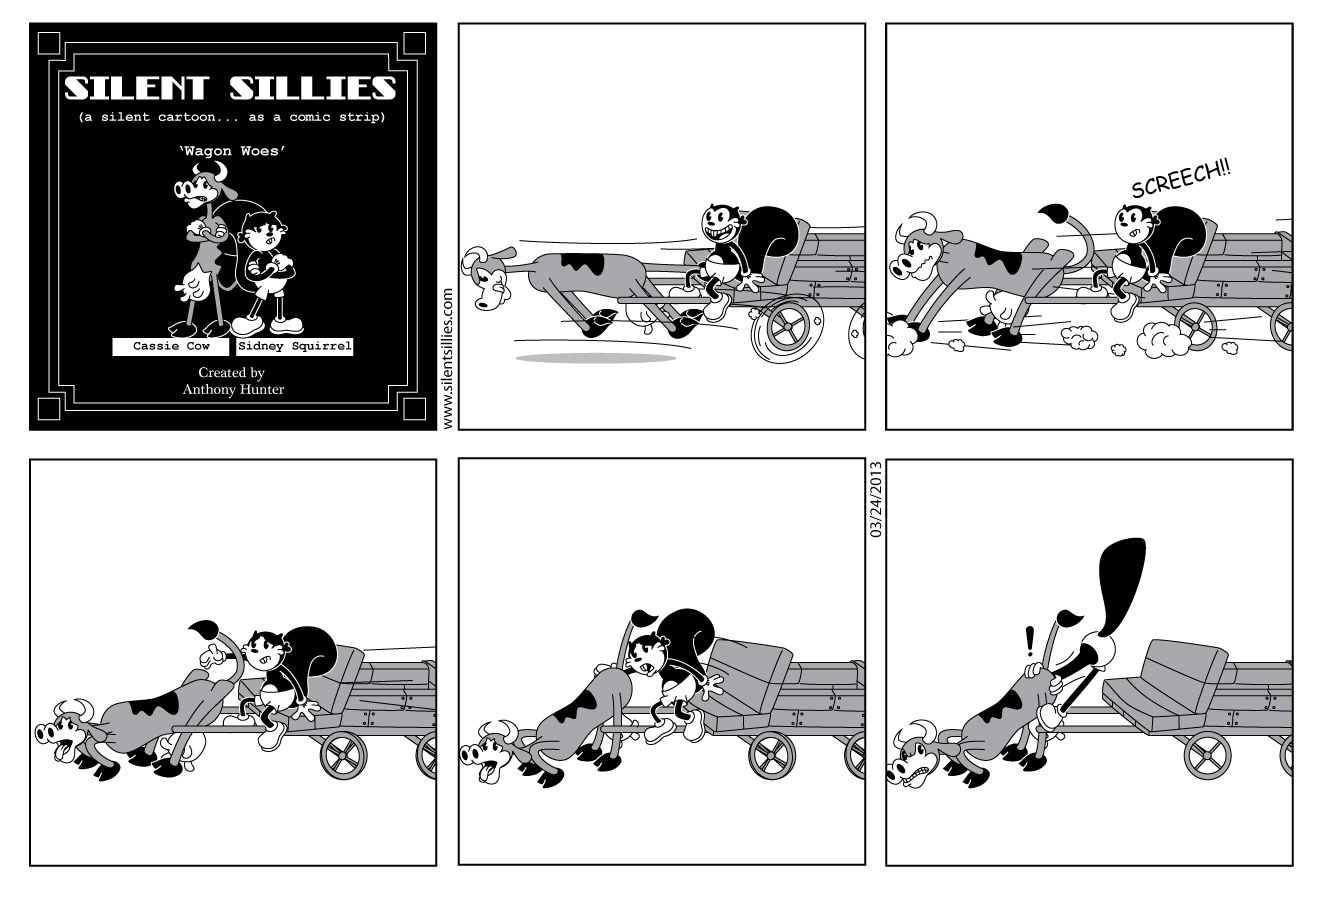 Silent Sillies: Wagon Woes